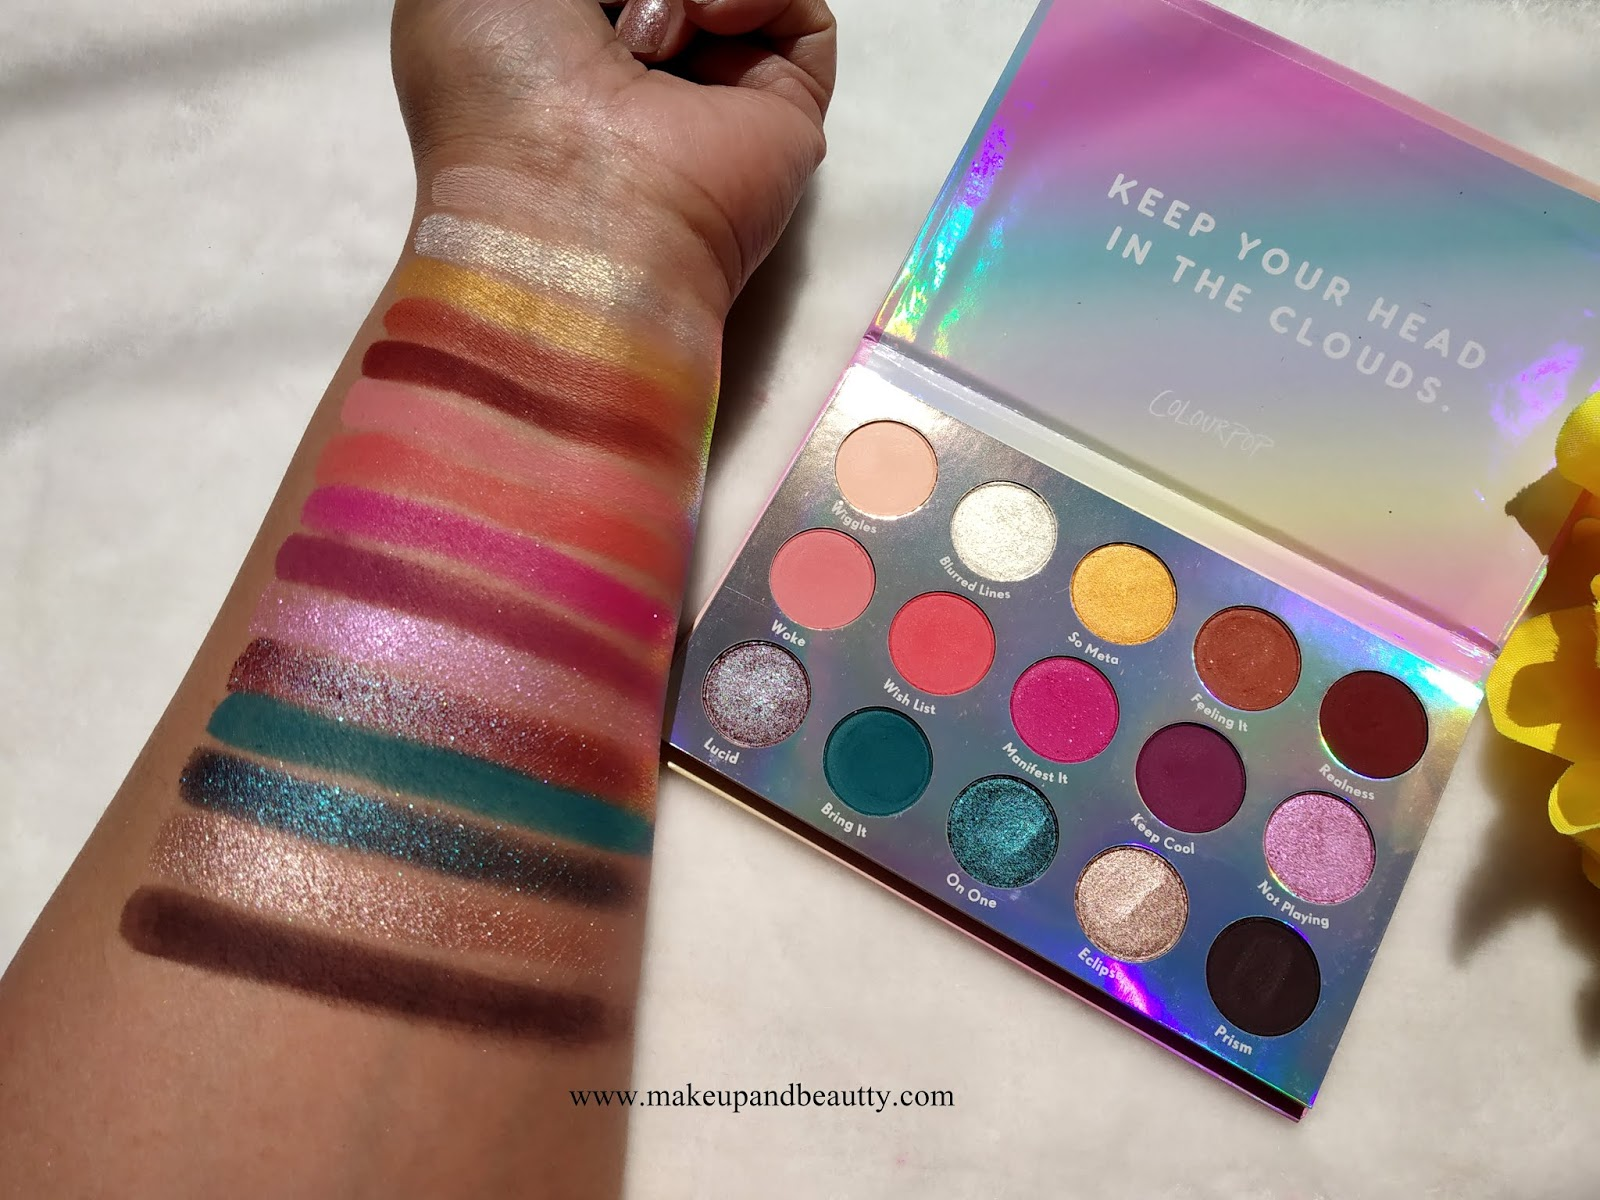 Chasing Rainbows Eyeshadow Palette by Colourpop #5